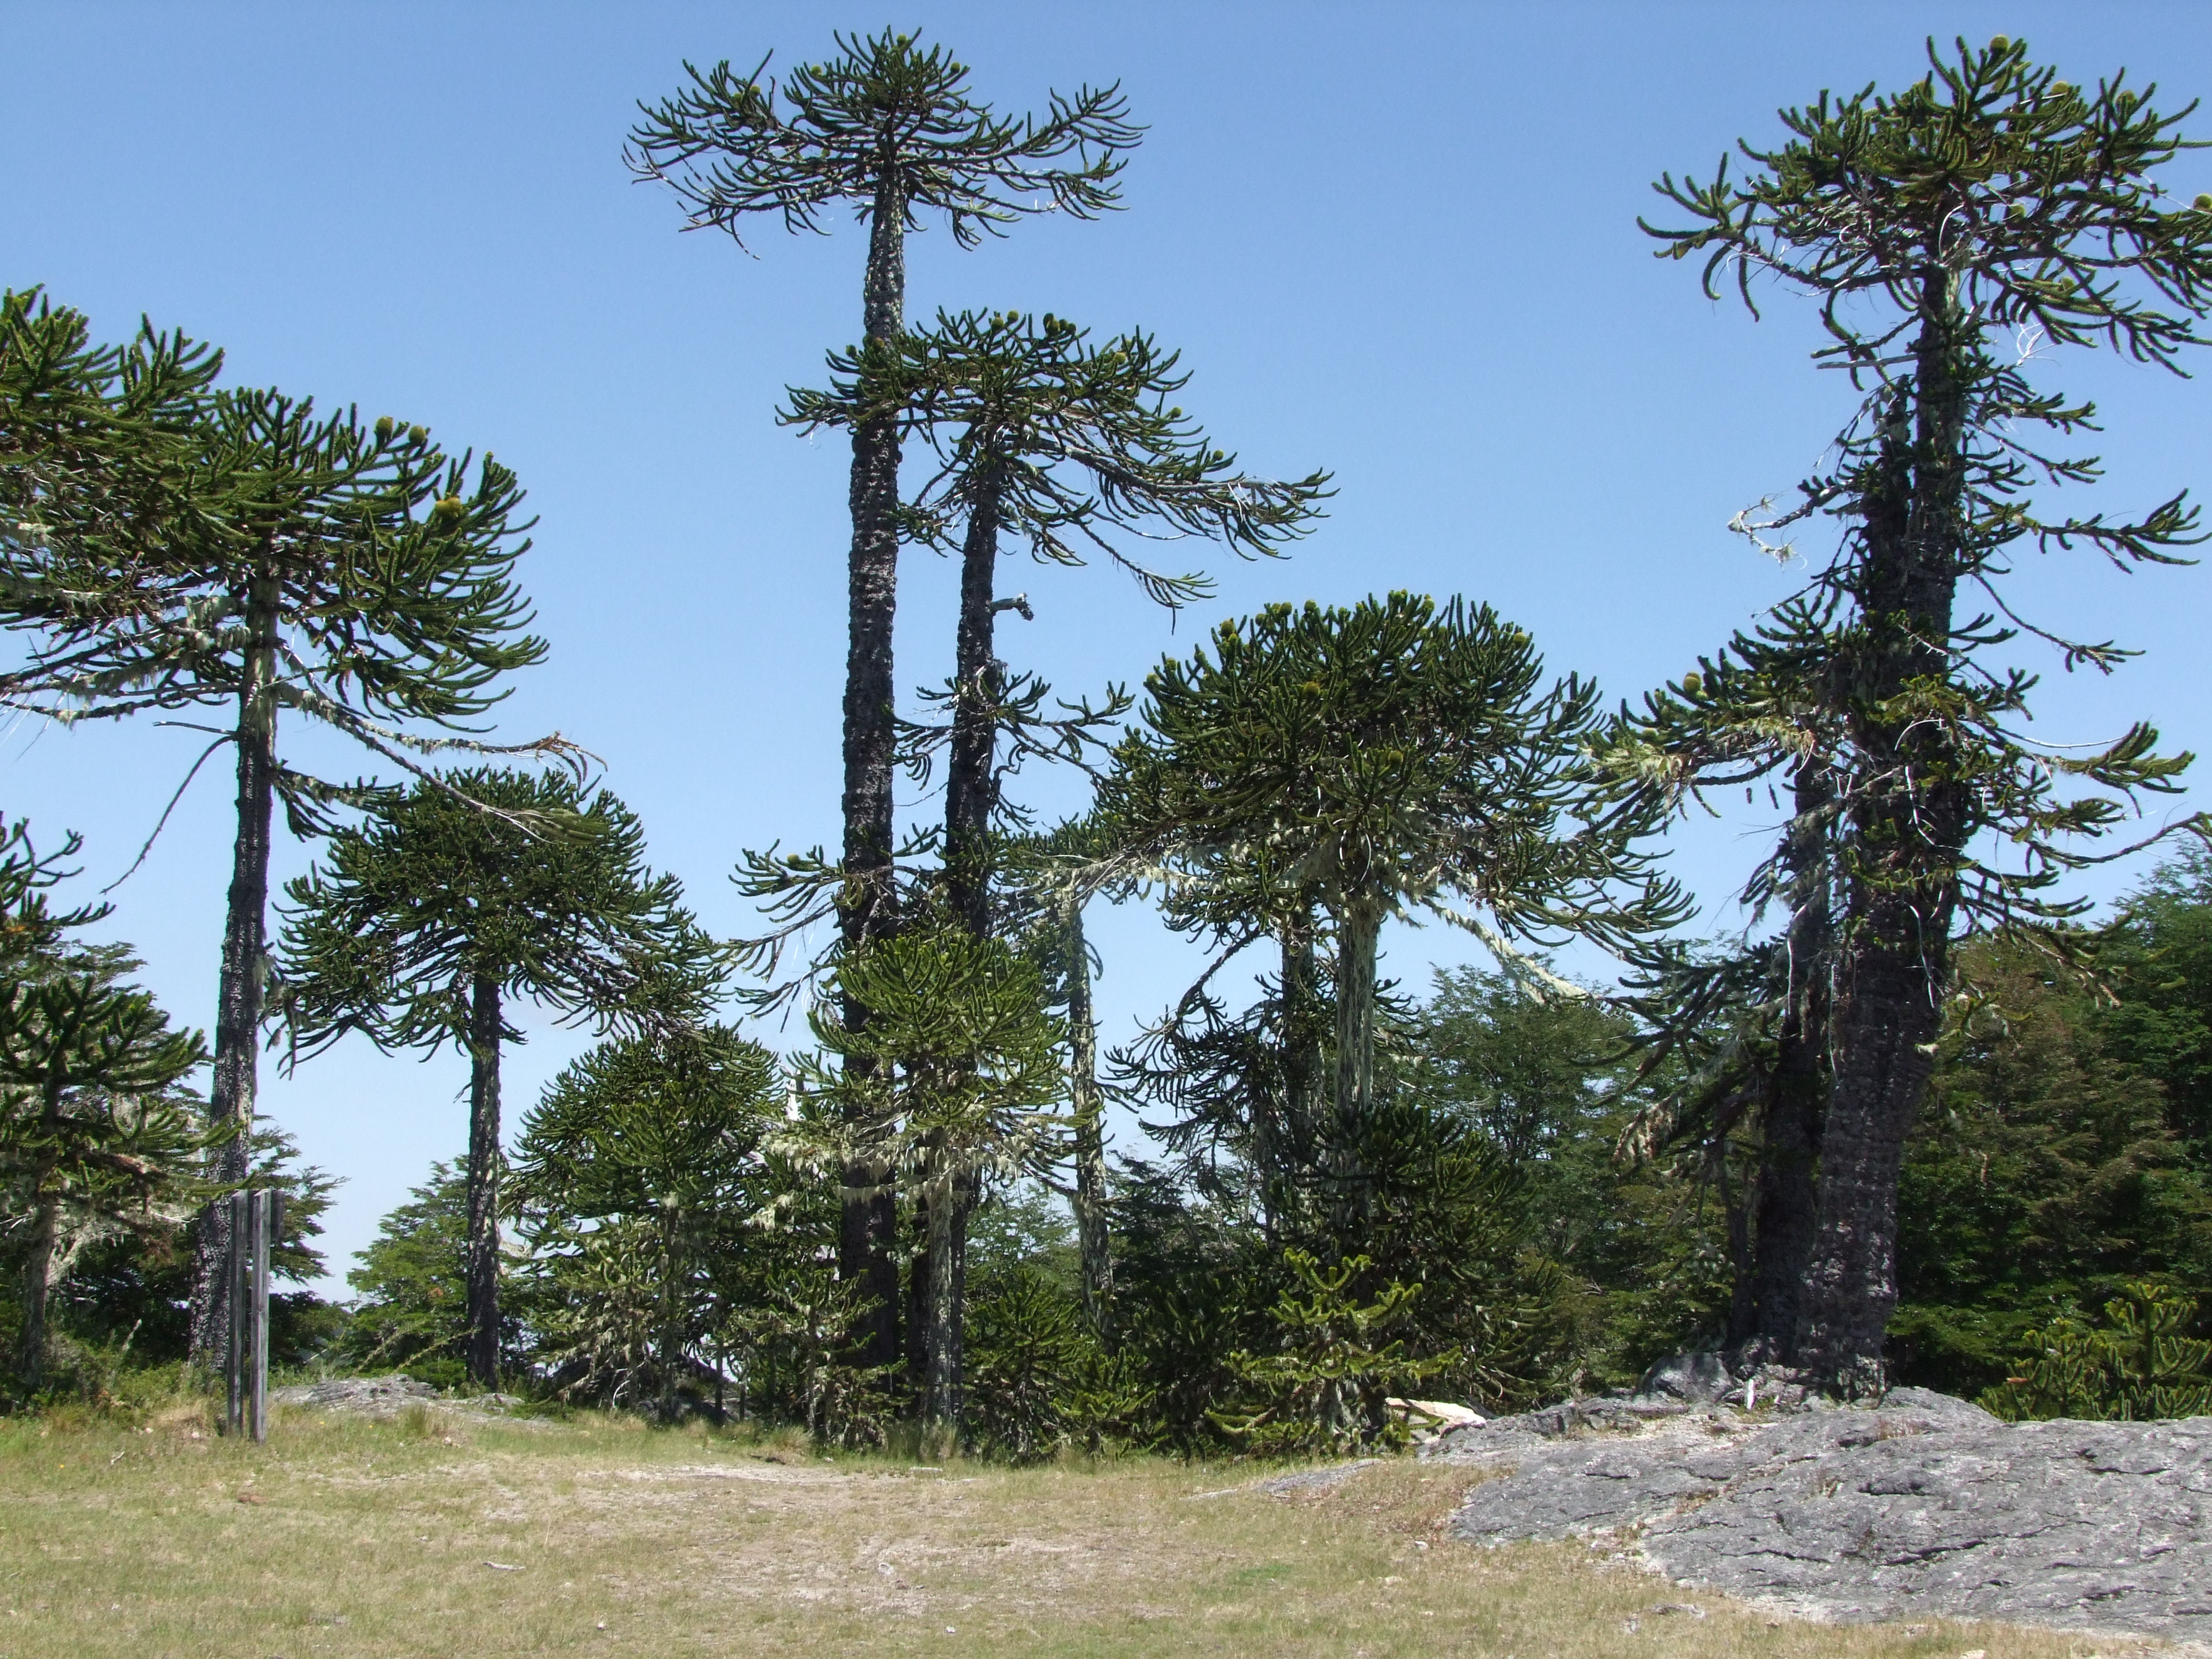 The newly planted monkey puzzles were grown from seed collected in native forests like this one in Chile